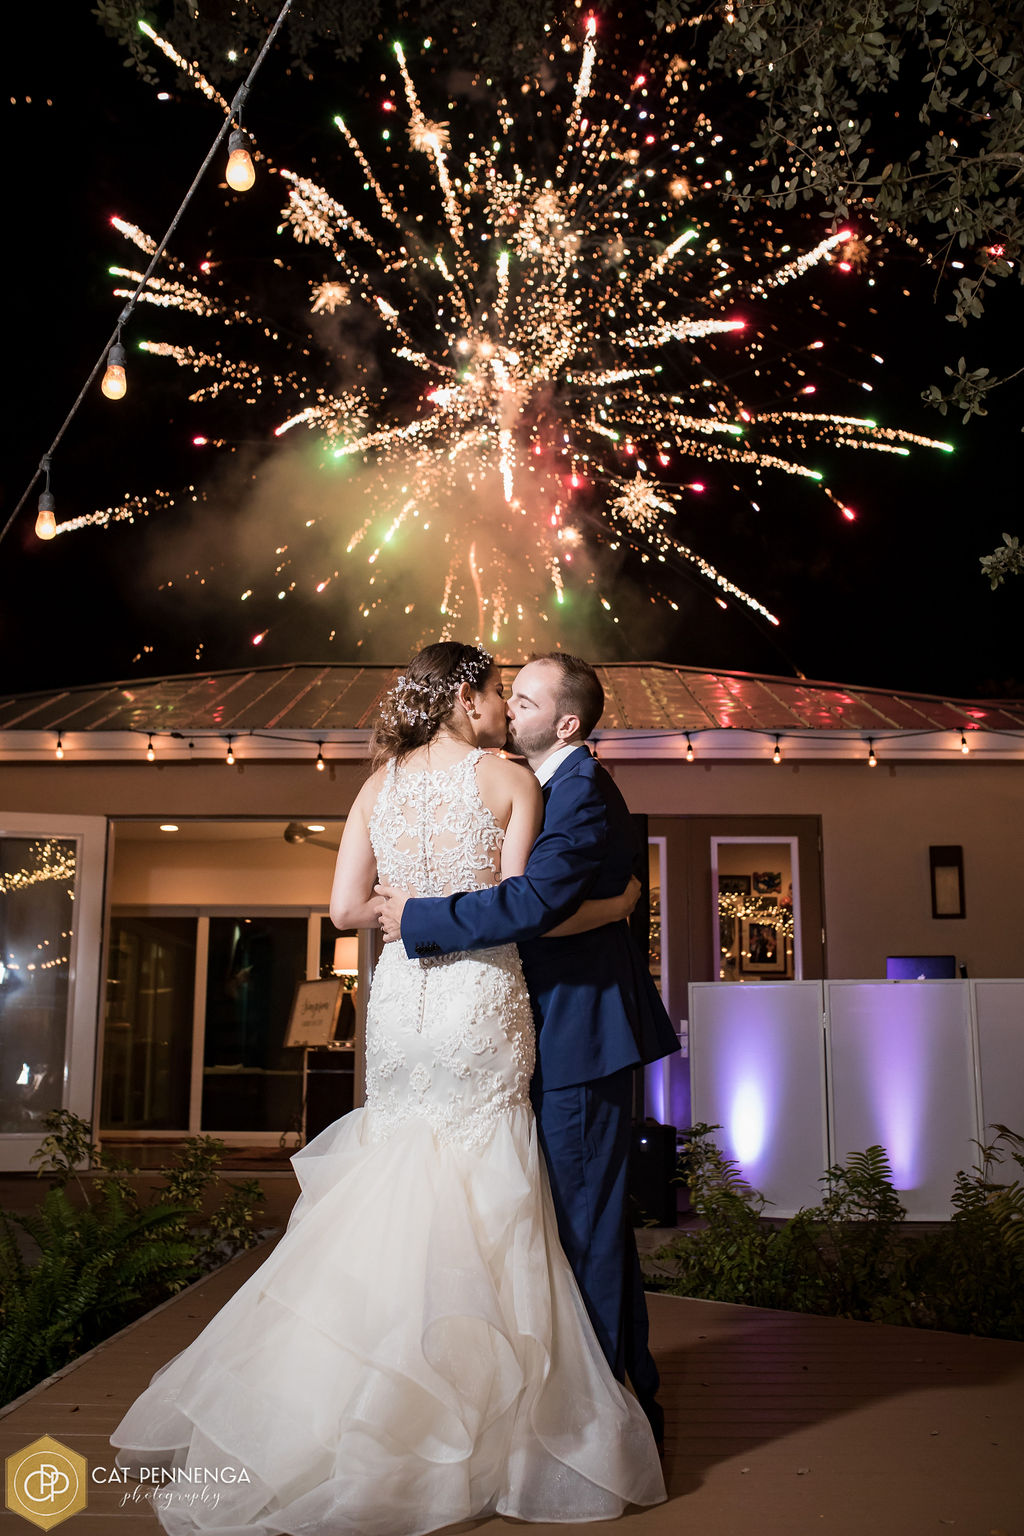 Newly married couple kissing with fireworks in the background